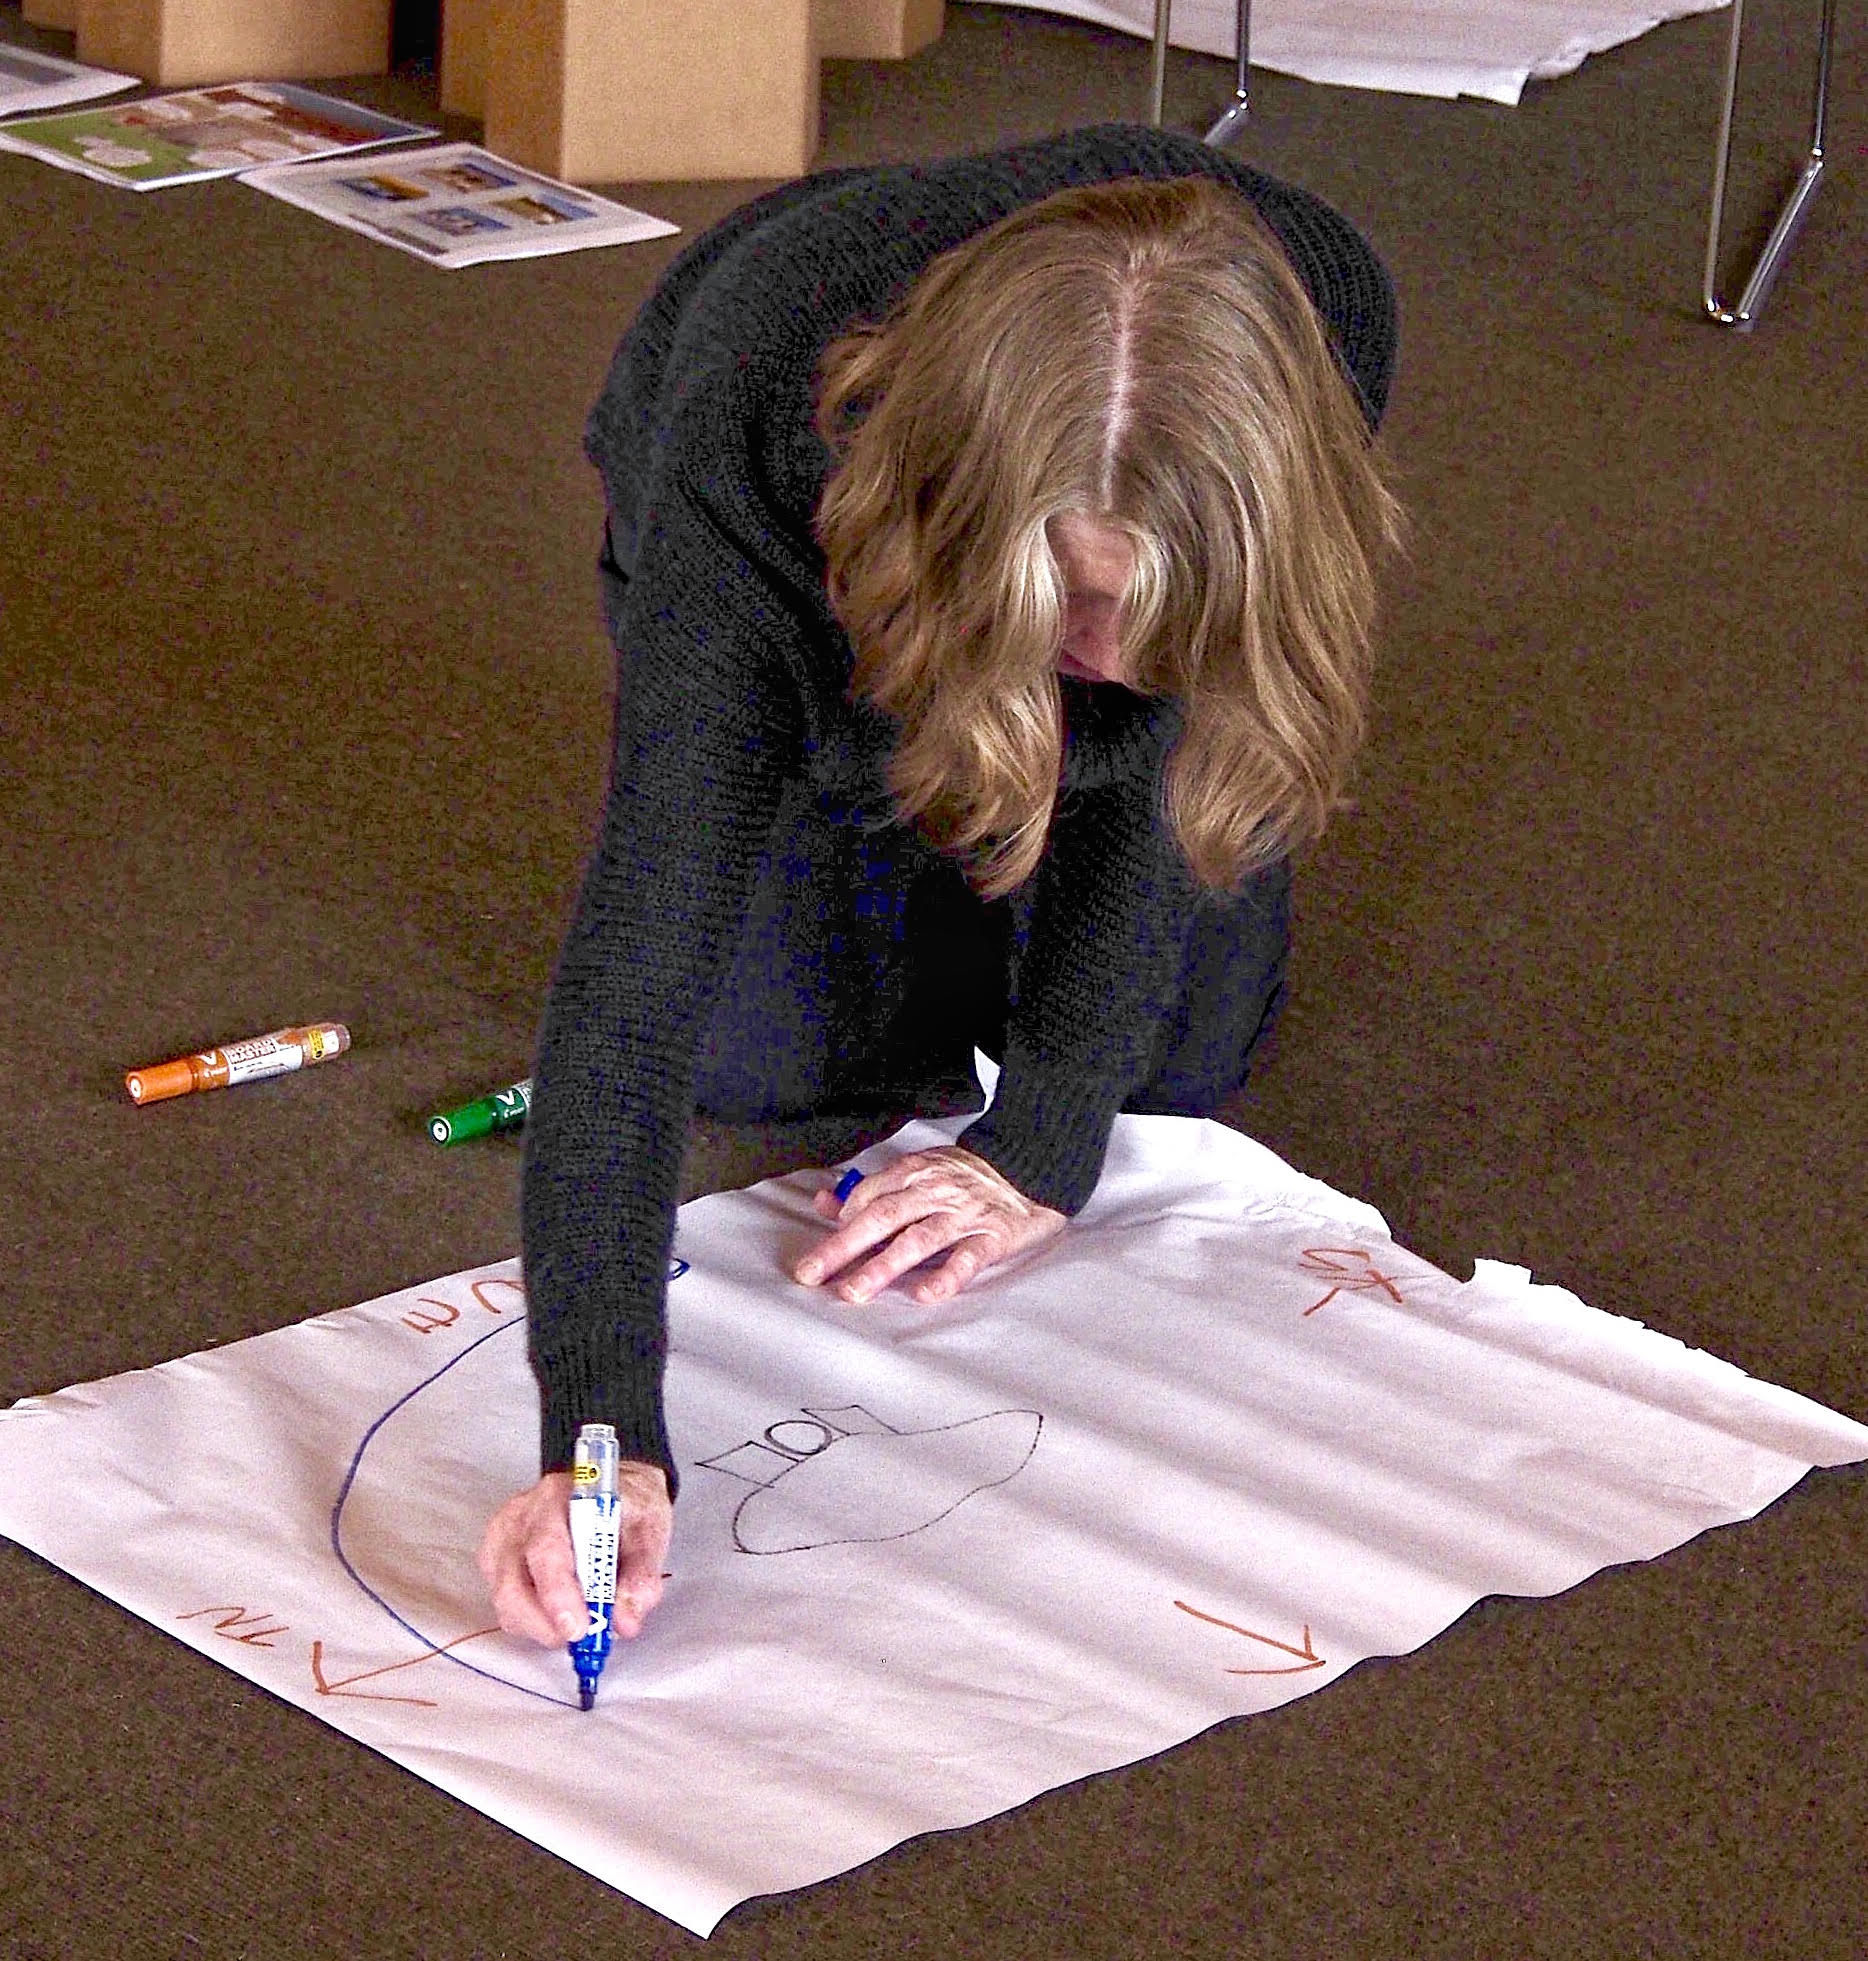 Fiona Campbell sketches a diagram while discussing site analysis.